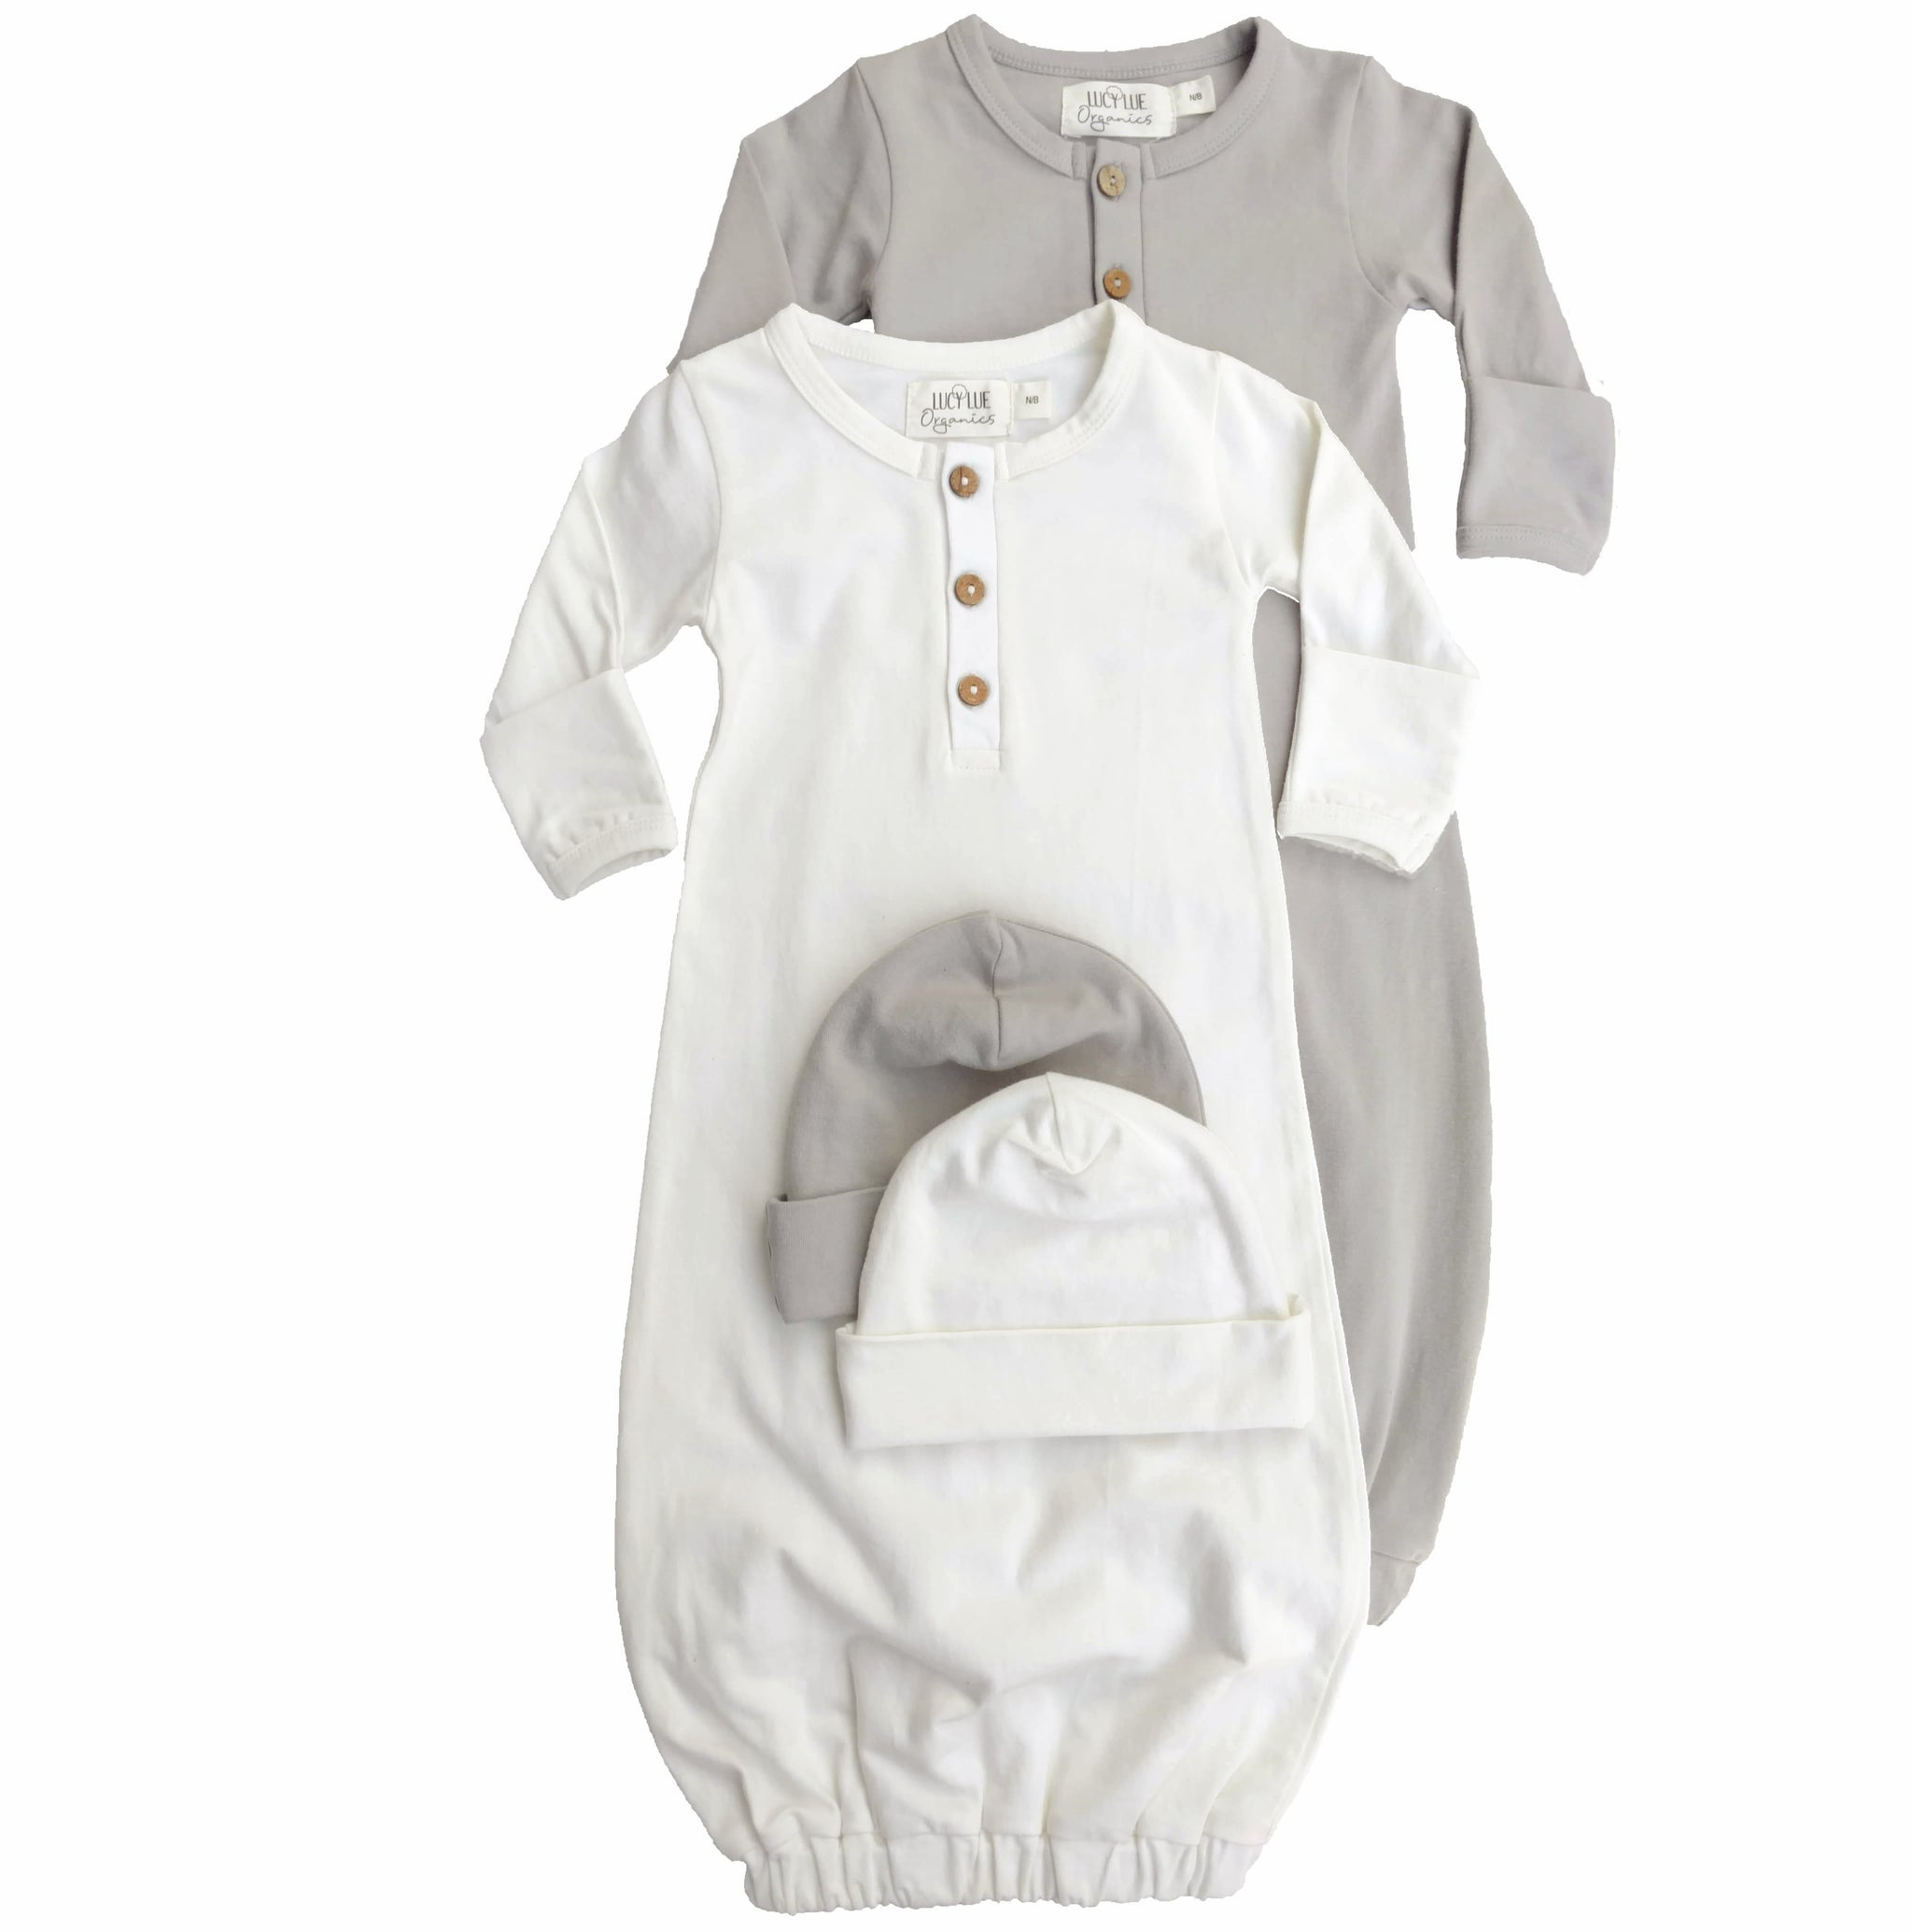 Organic newborn layette bundle set from Lucy Lue Organics. Modern organic baby clothes, baby shower gift, soft baby clothes, baby onesie, knotted baby gown, baby gowns, organic baby clothes, Monica and Andy baby rompers, Spearmintbaby, Finn and Emma, Kate Quinn